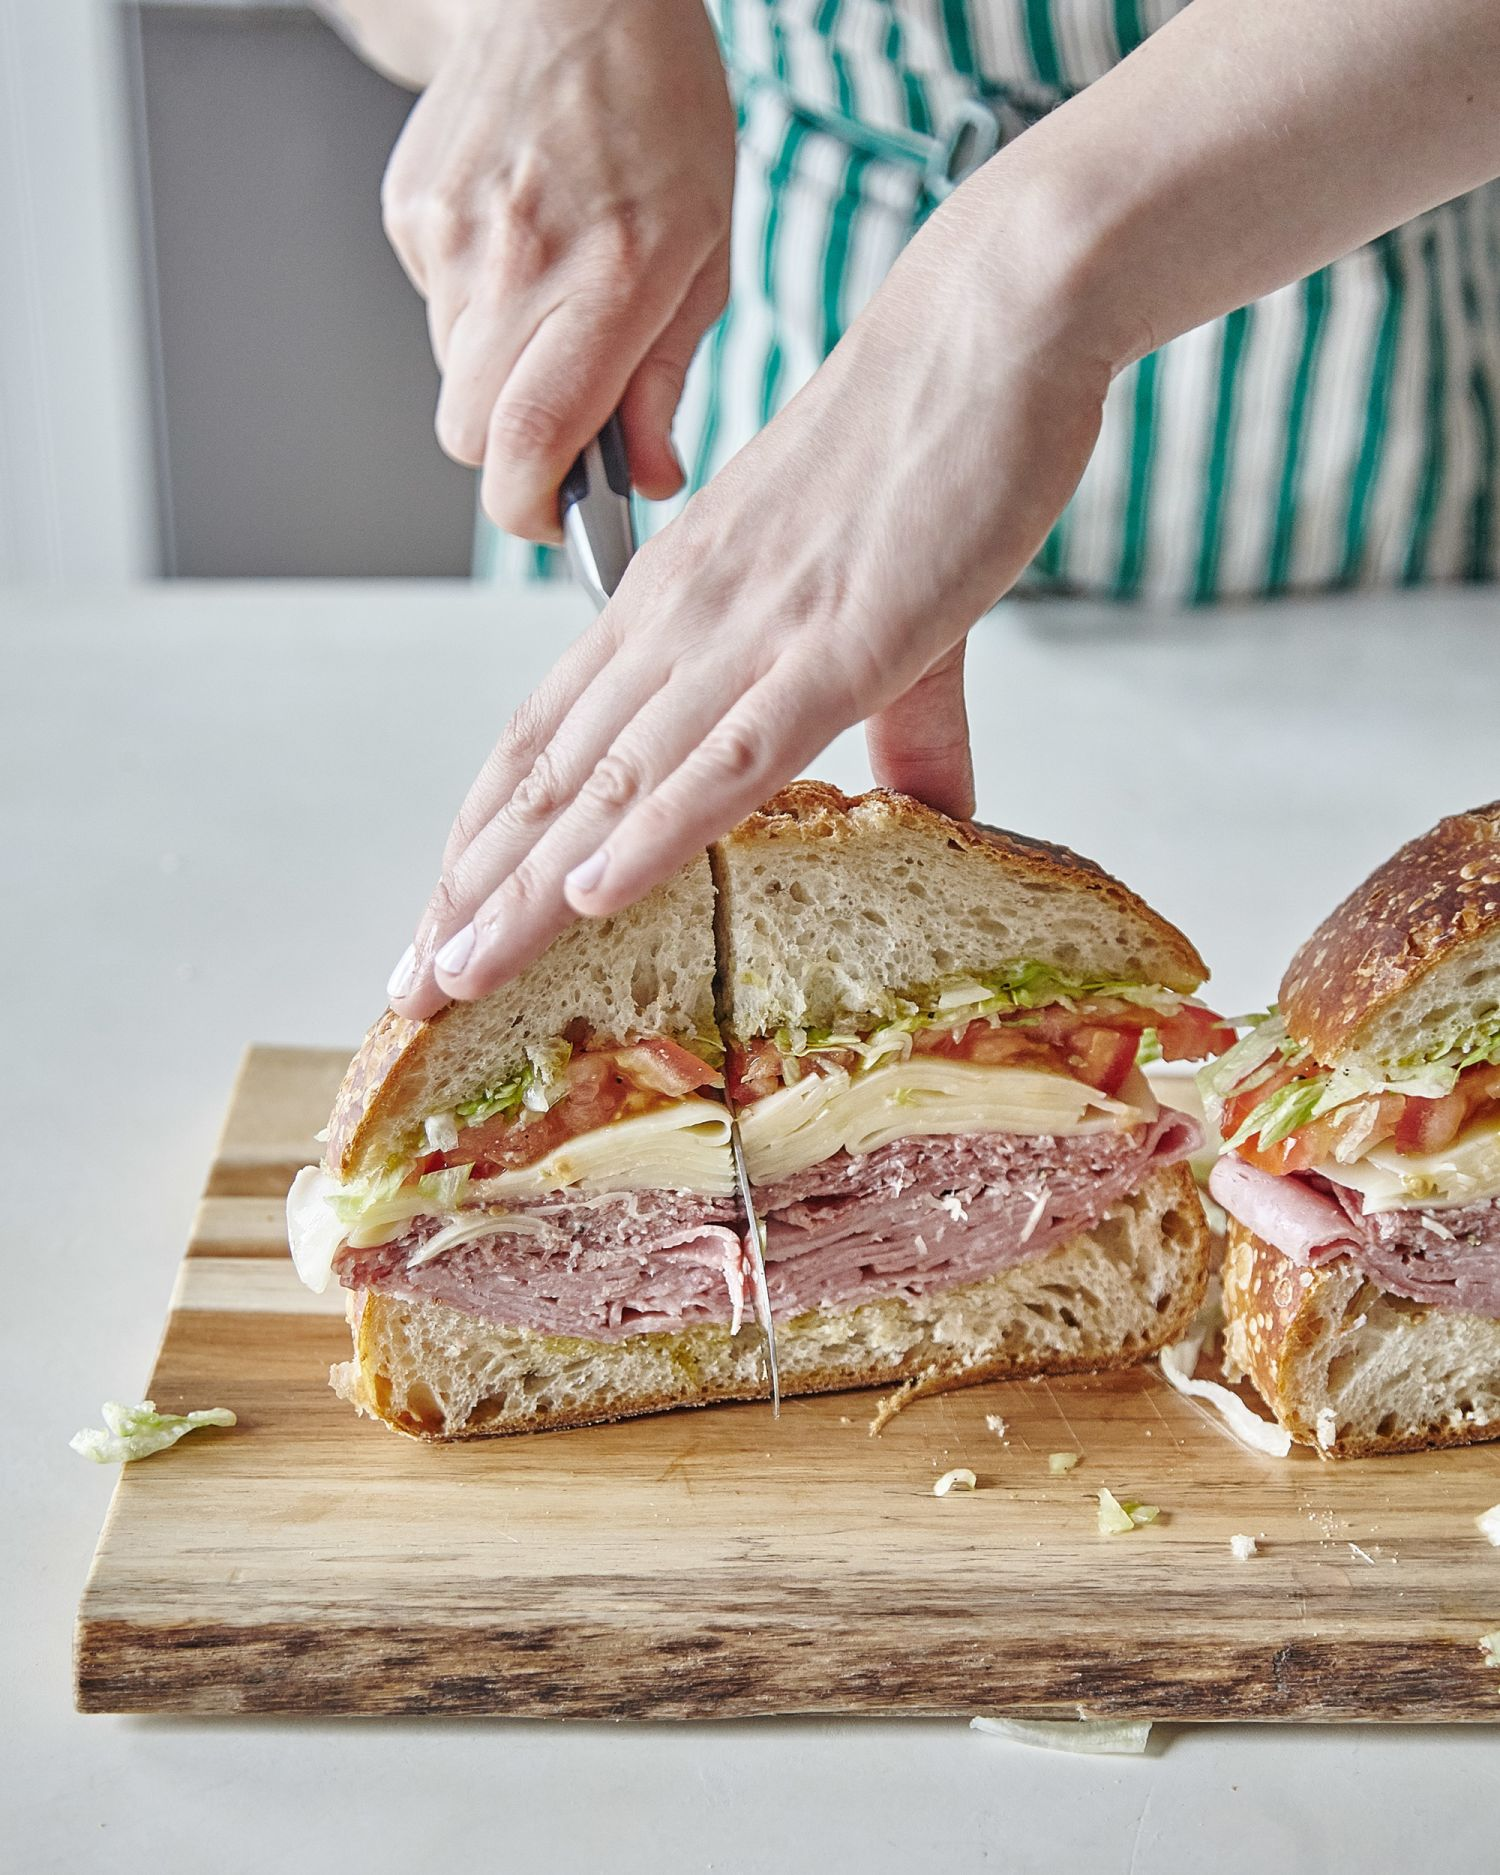 This Make-Ahead Sandwich Feeds Up to 10 People